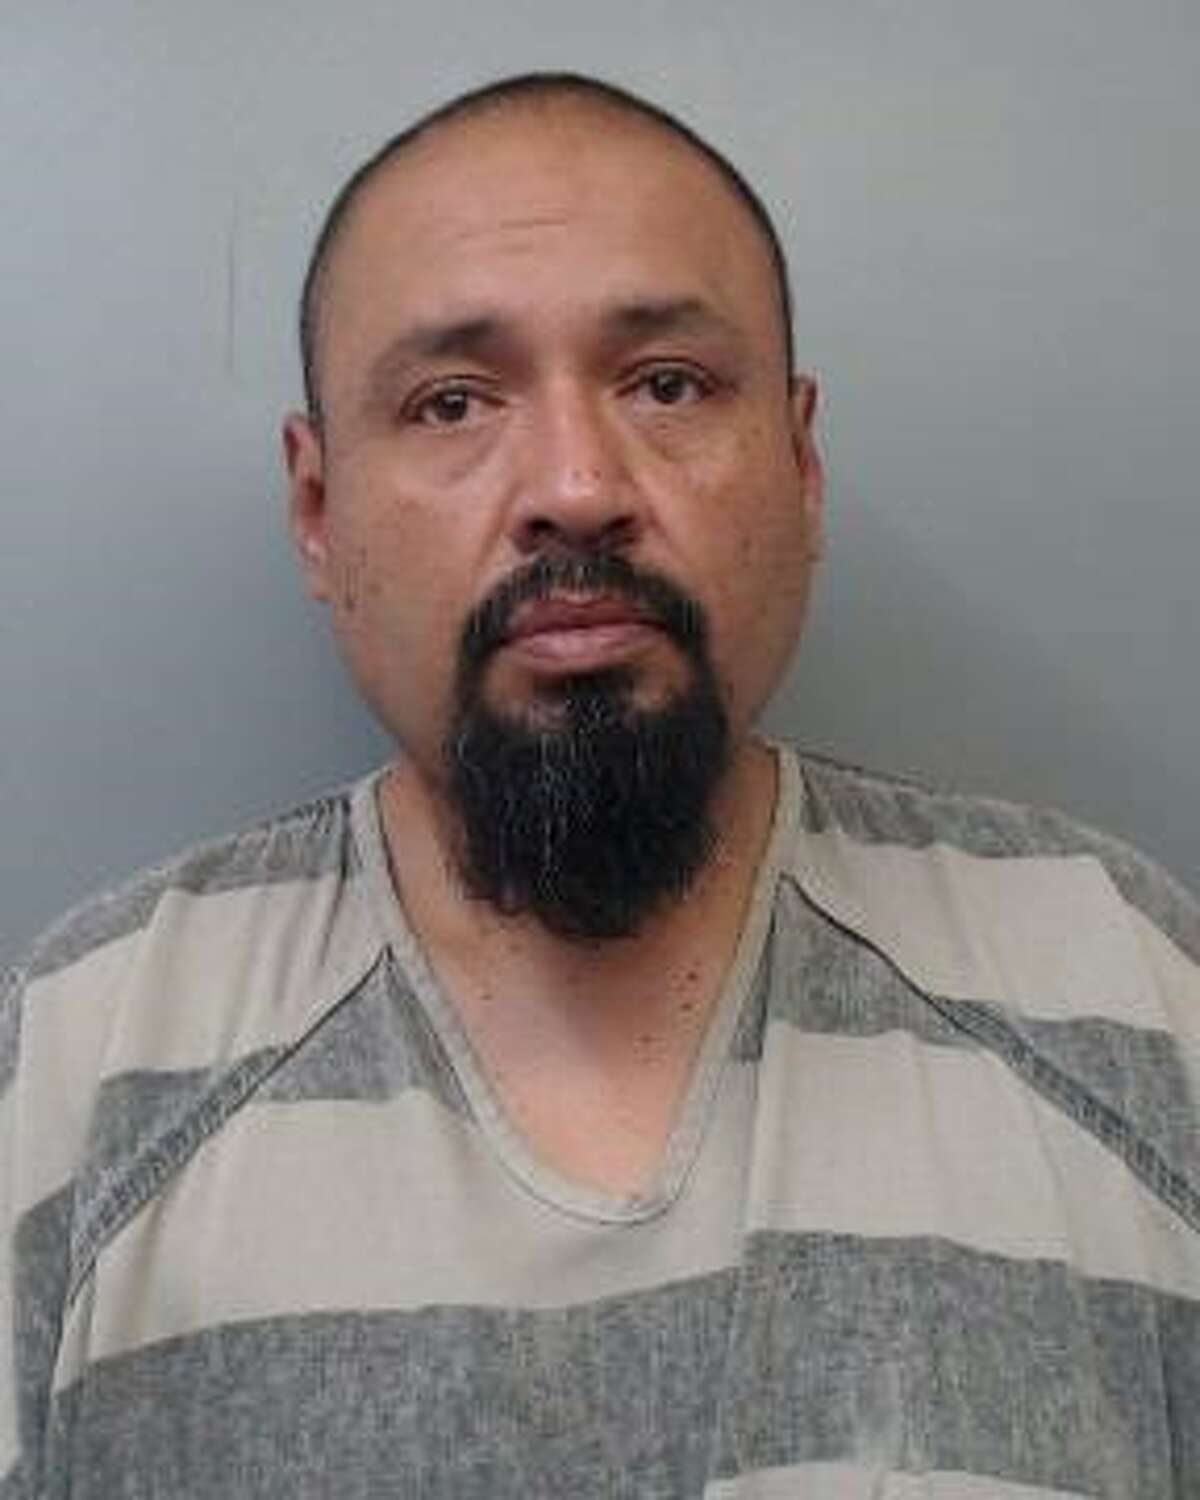 Alfonso Solis, 43, was arrested on Saturday and charged with making a false report to police and striking an unattended vehicle.